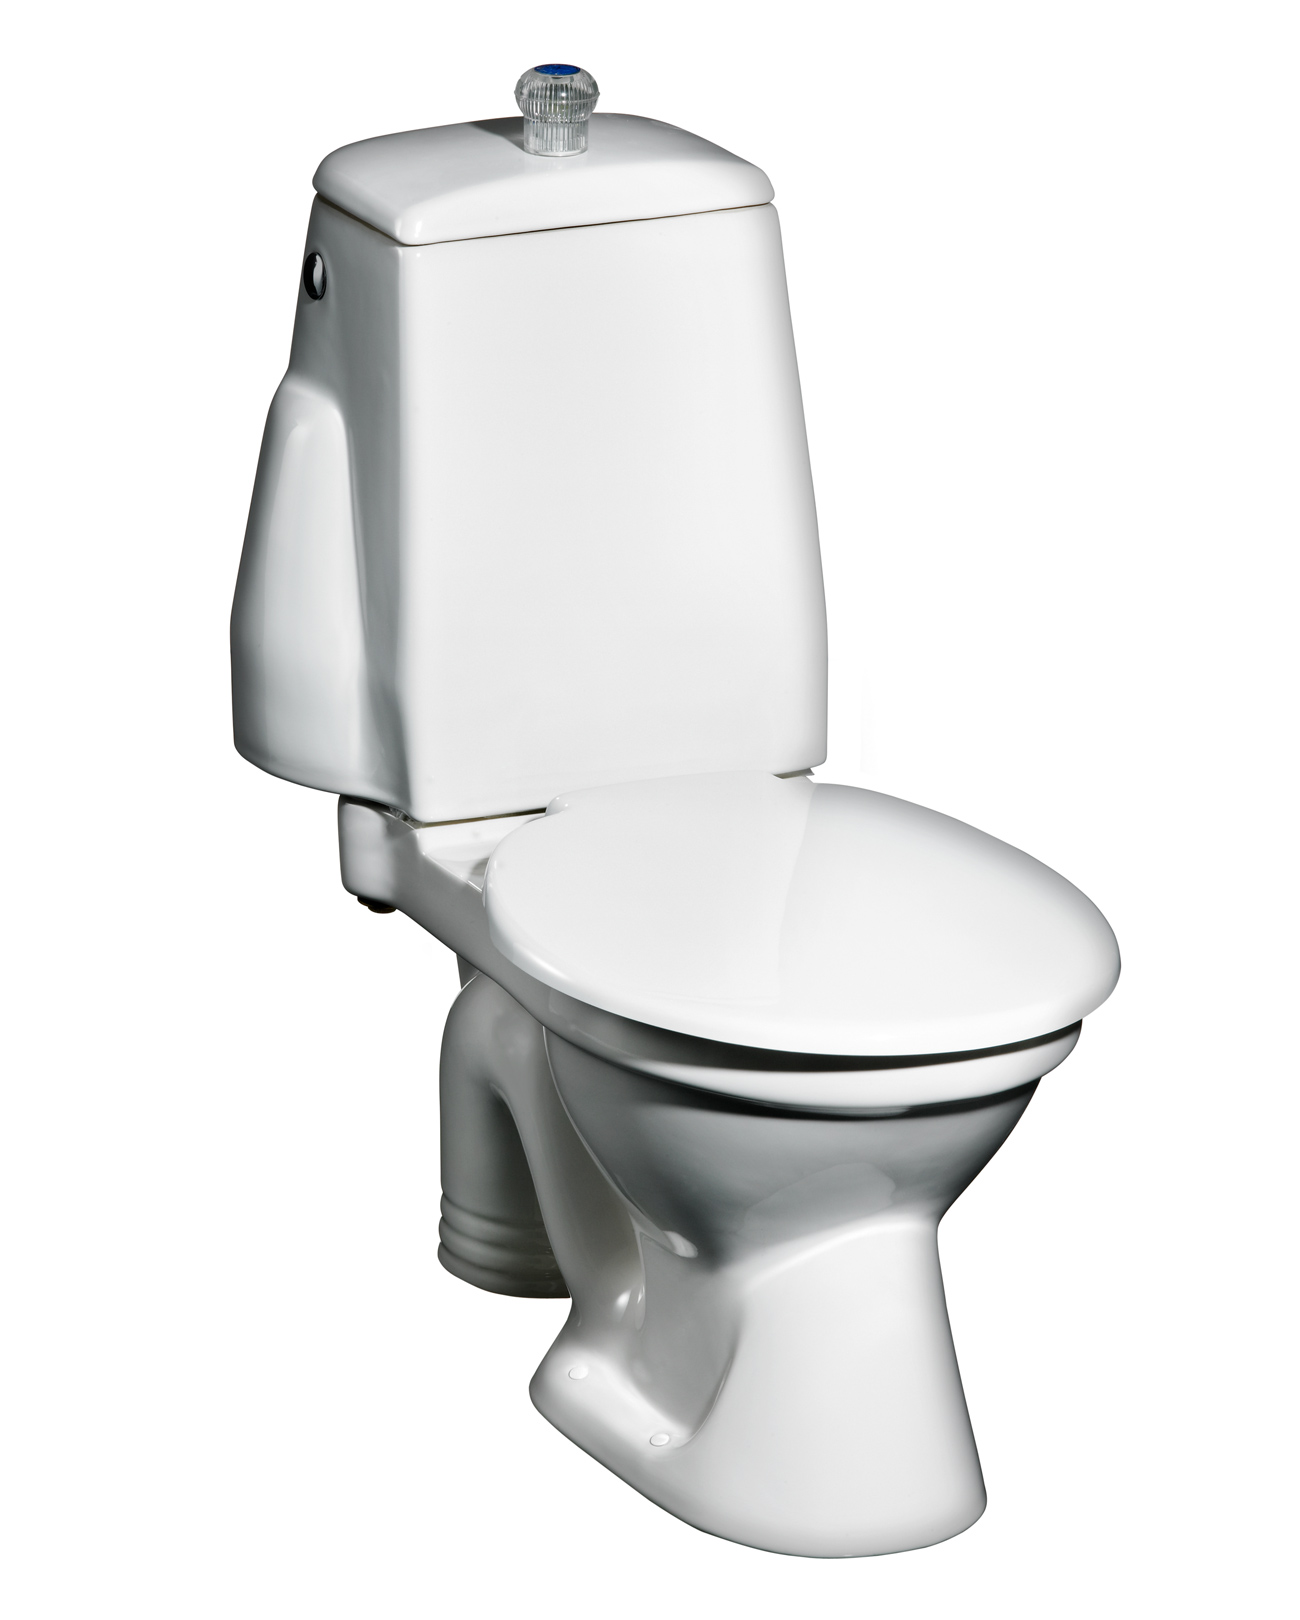 Toilet - quality, function and design for your bathroom - Gustavsberg